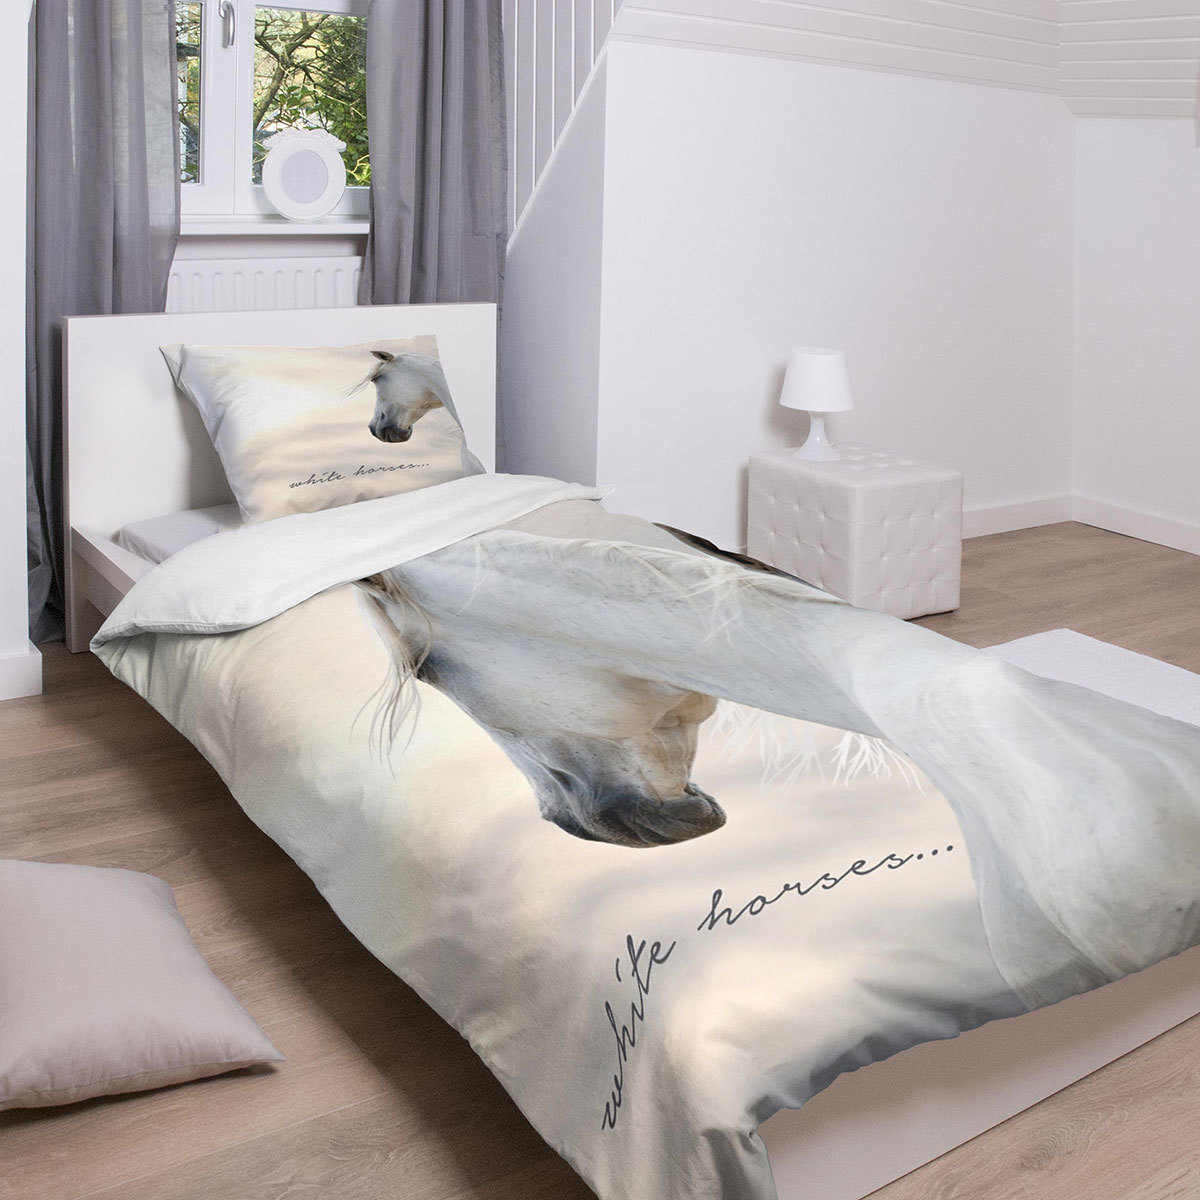 traumschlaf bettw sche white horses g nstig online kaufen bei bettwaren shop. Black Bedroom Furniture Sets. Home Design Ideas